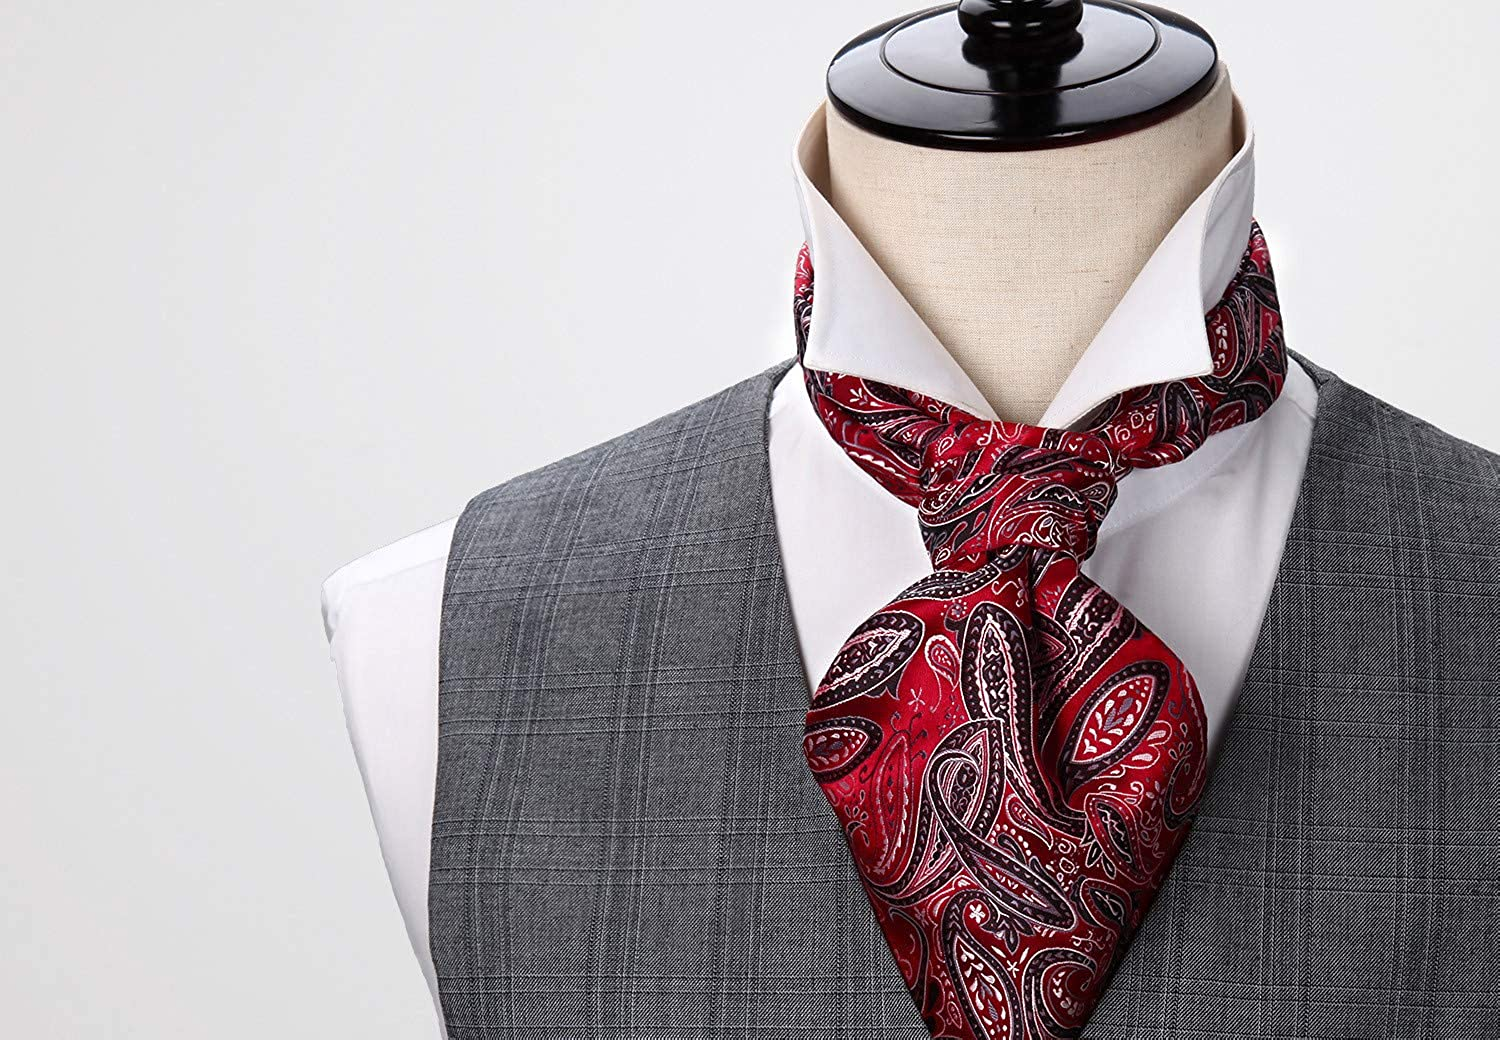 HISDERN Mens Paisley Floral Ascot Jacquard Woven Cravat Tie and Pocket Square Set